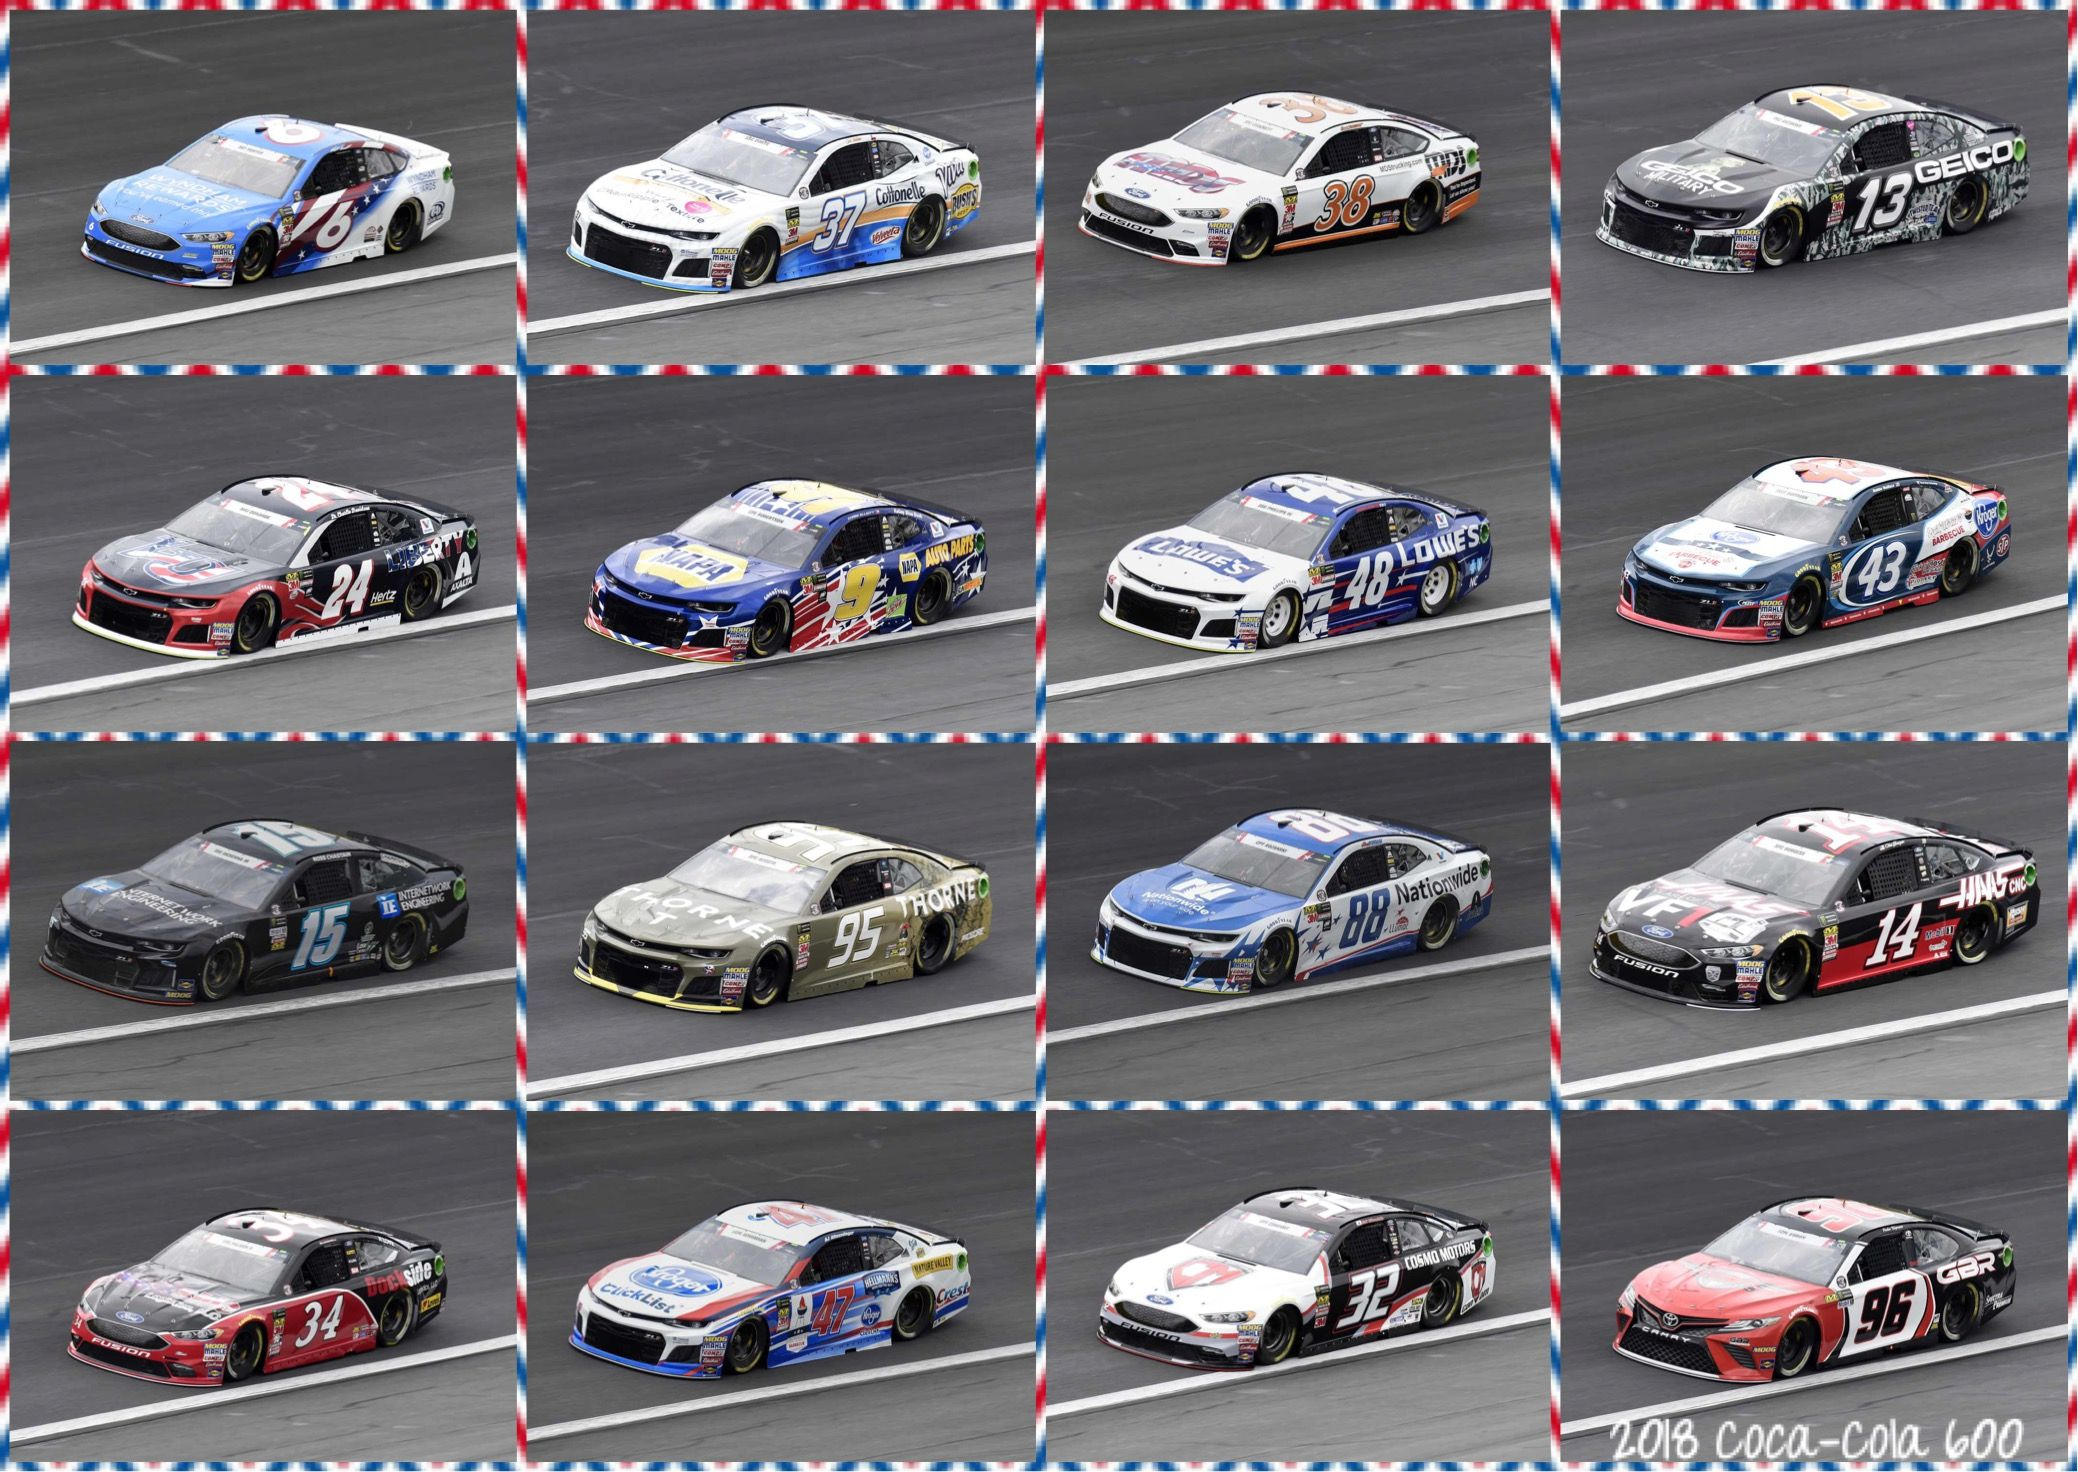 2018 Coke Cola 600 Lineup With Images Coke Cola Sports Car Nascar